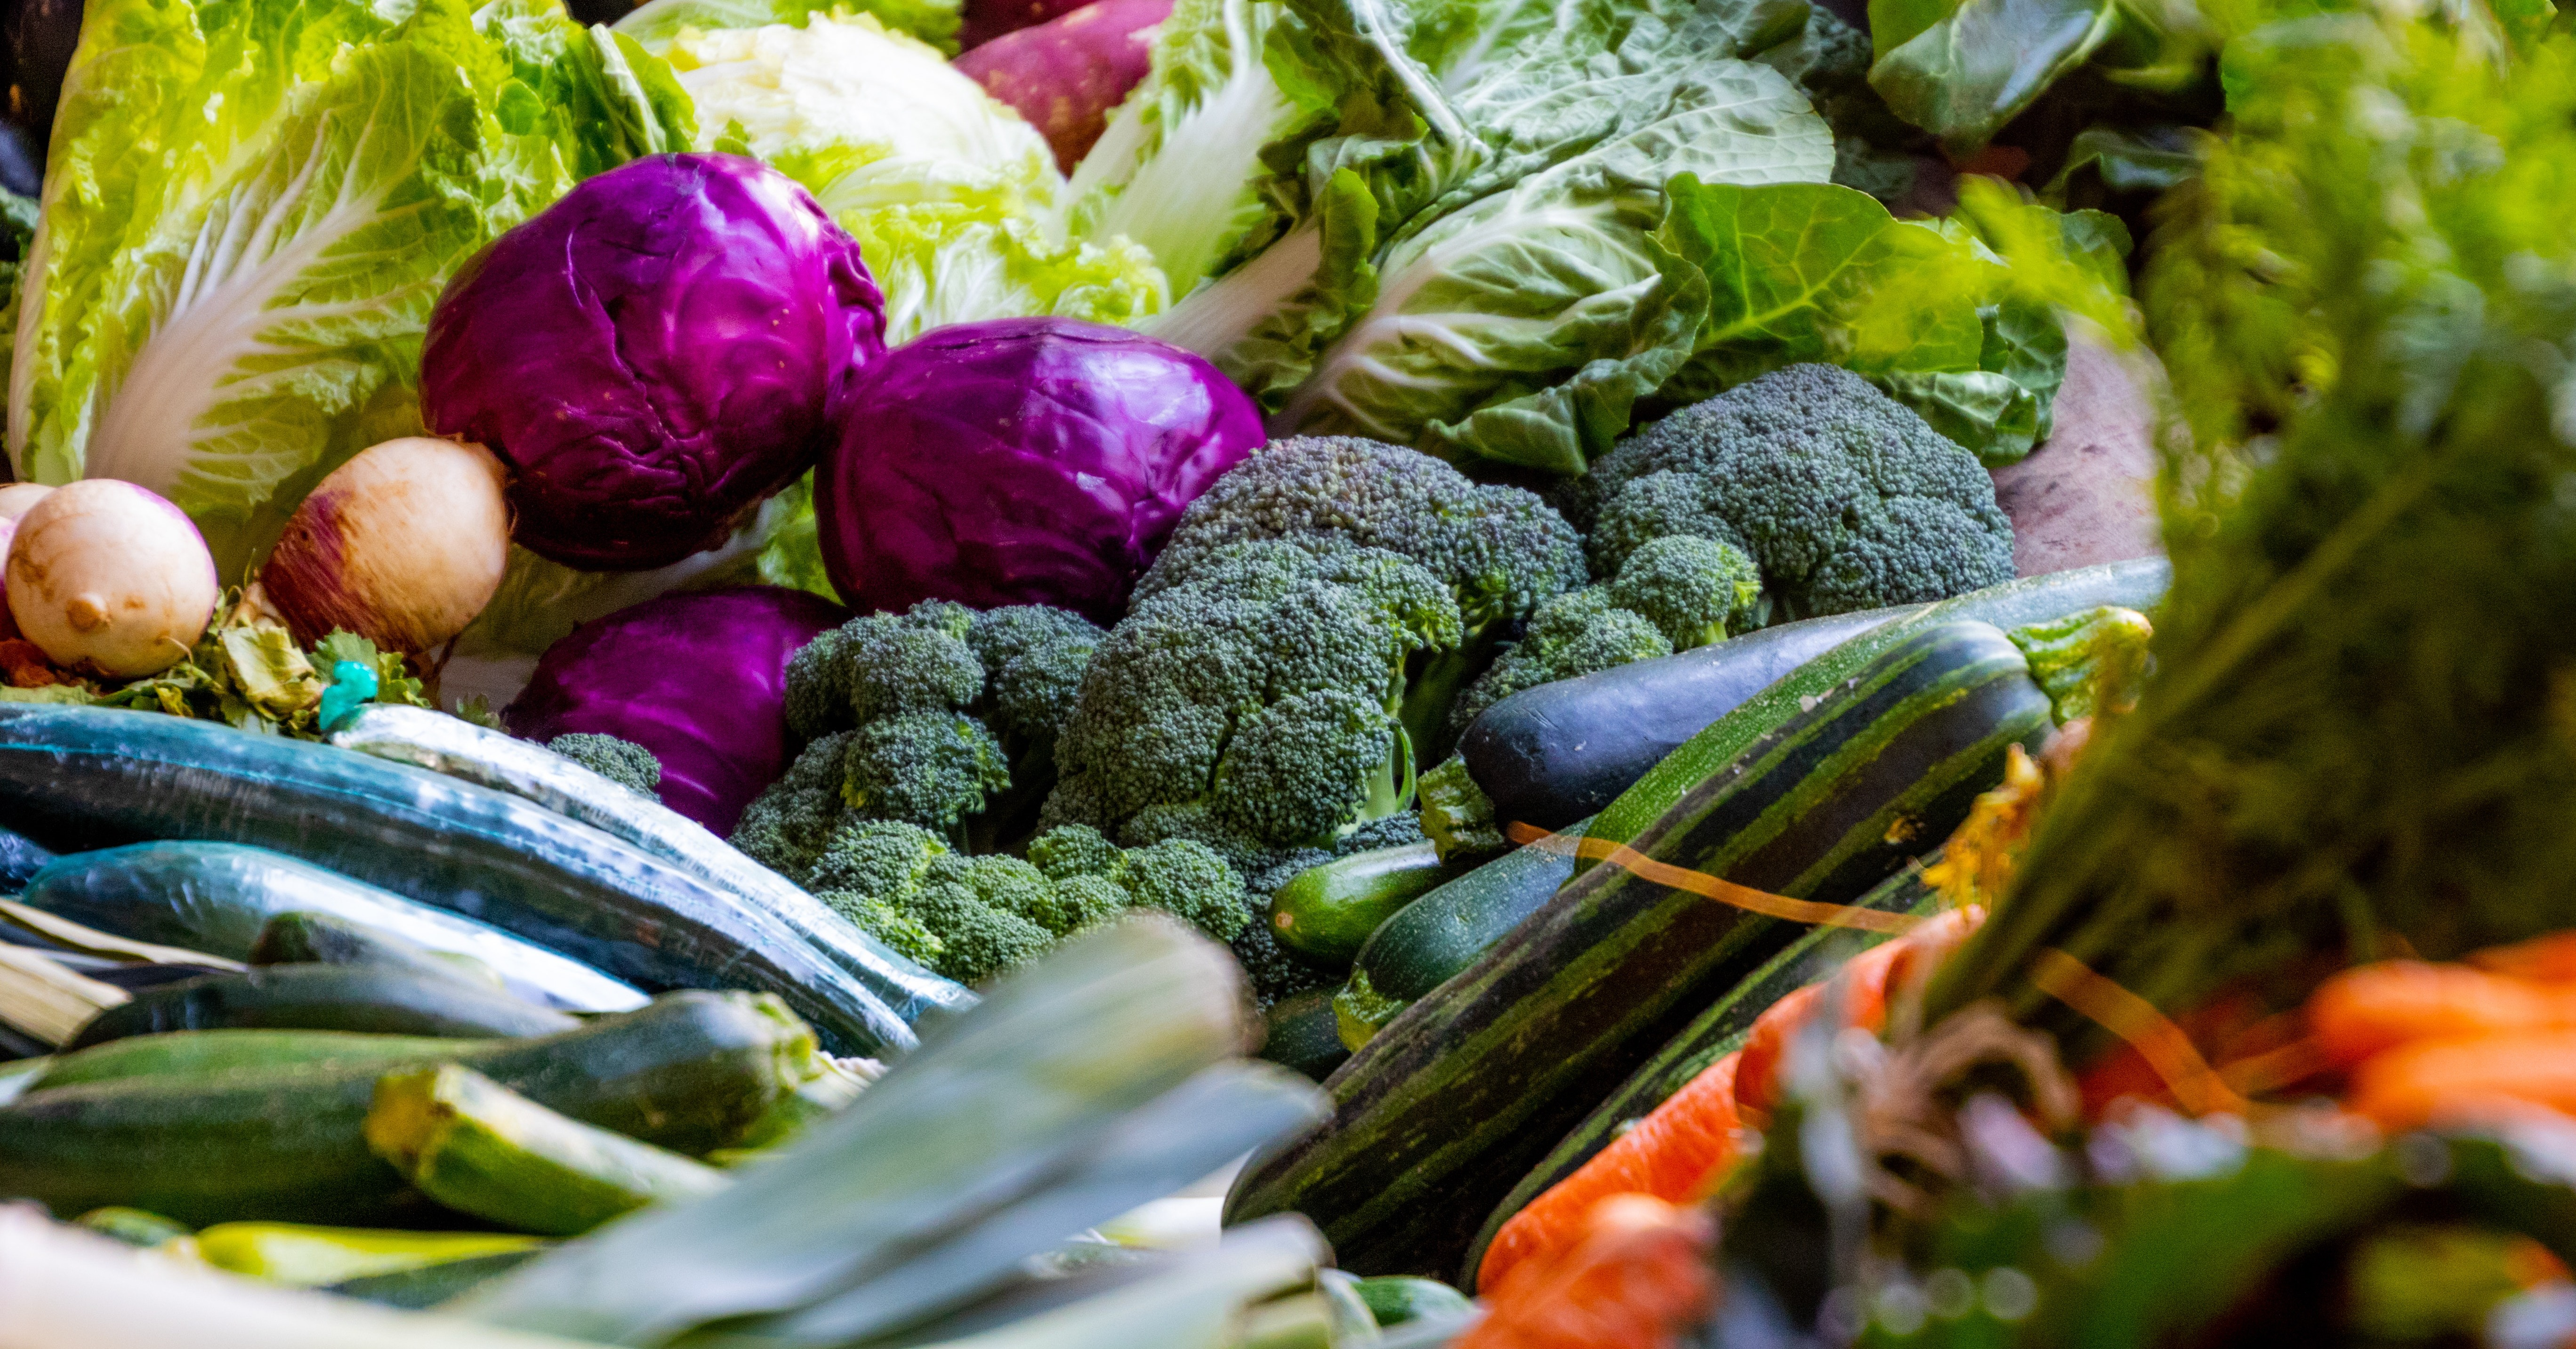 The impact of food waste and how to reduce it